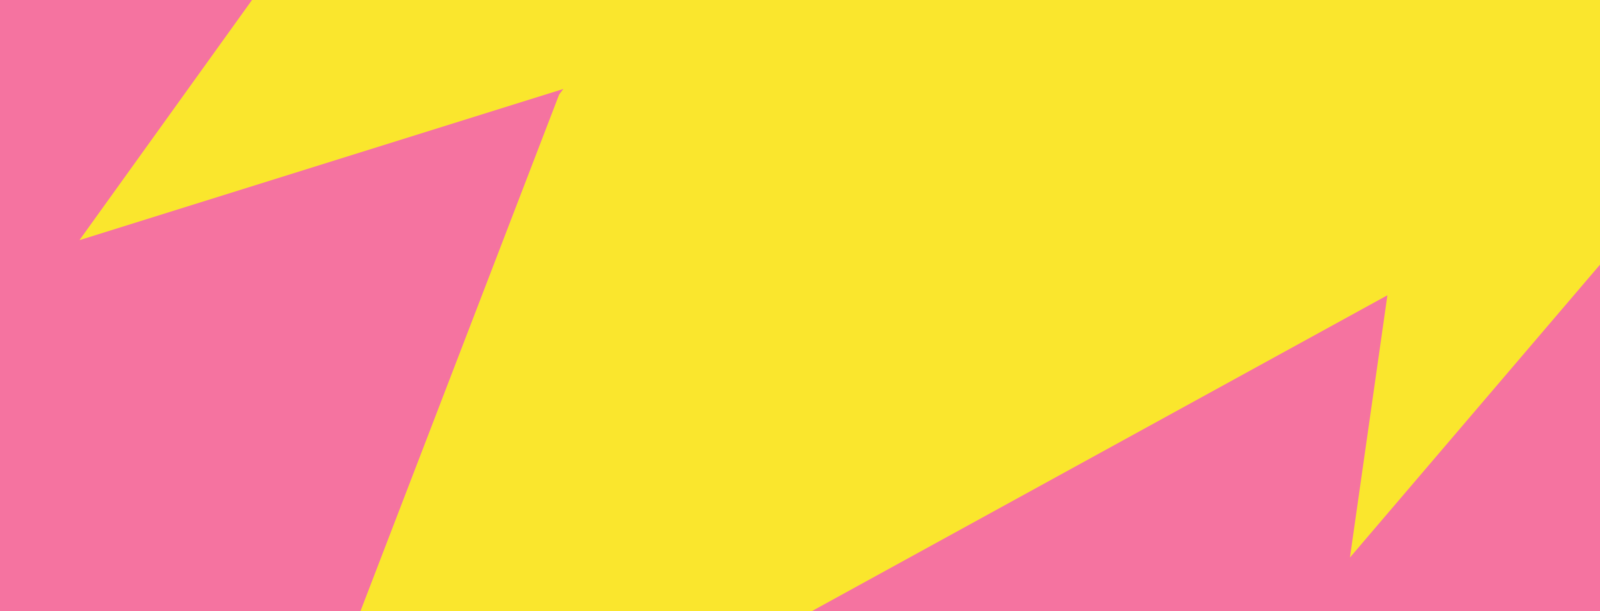 Triangle Burst2 Pink Nocopy.png